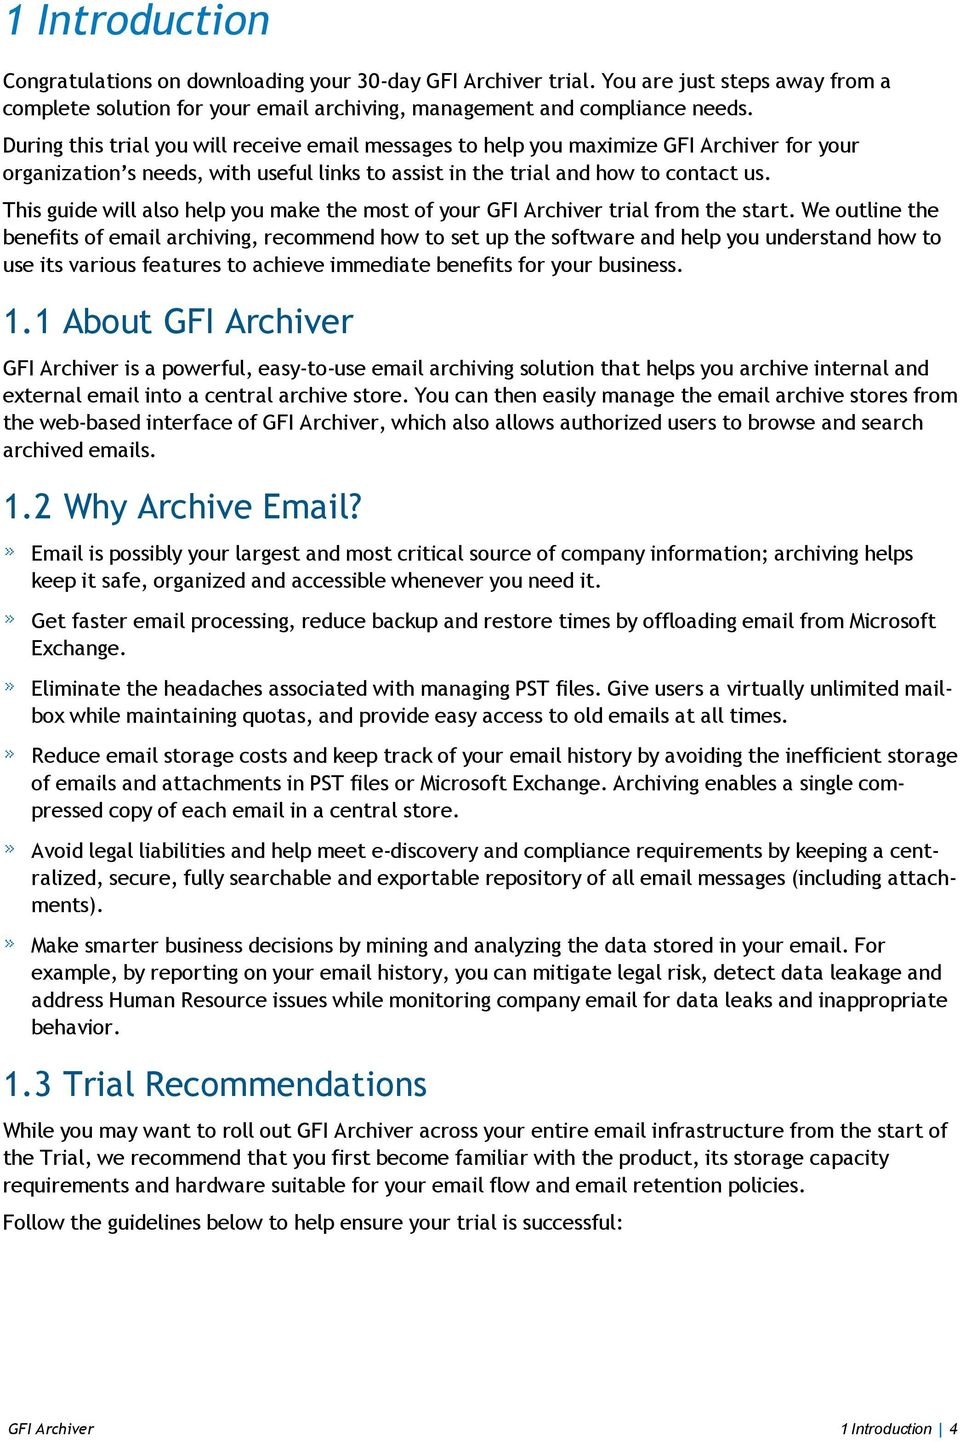 This guide will also help you make the most of your GFI Archiver trial from the start.